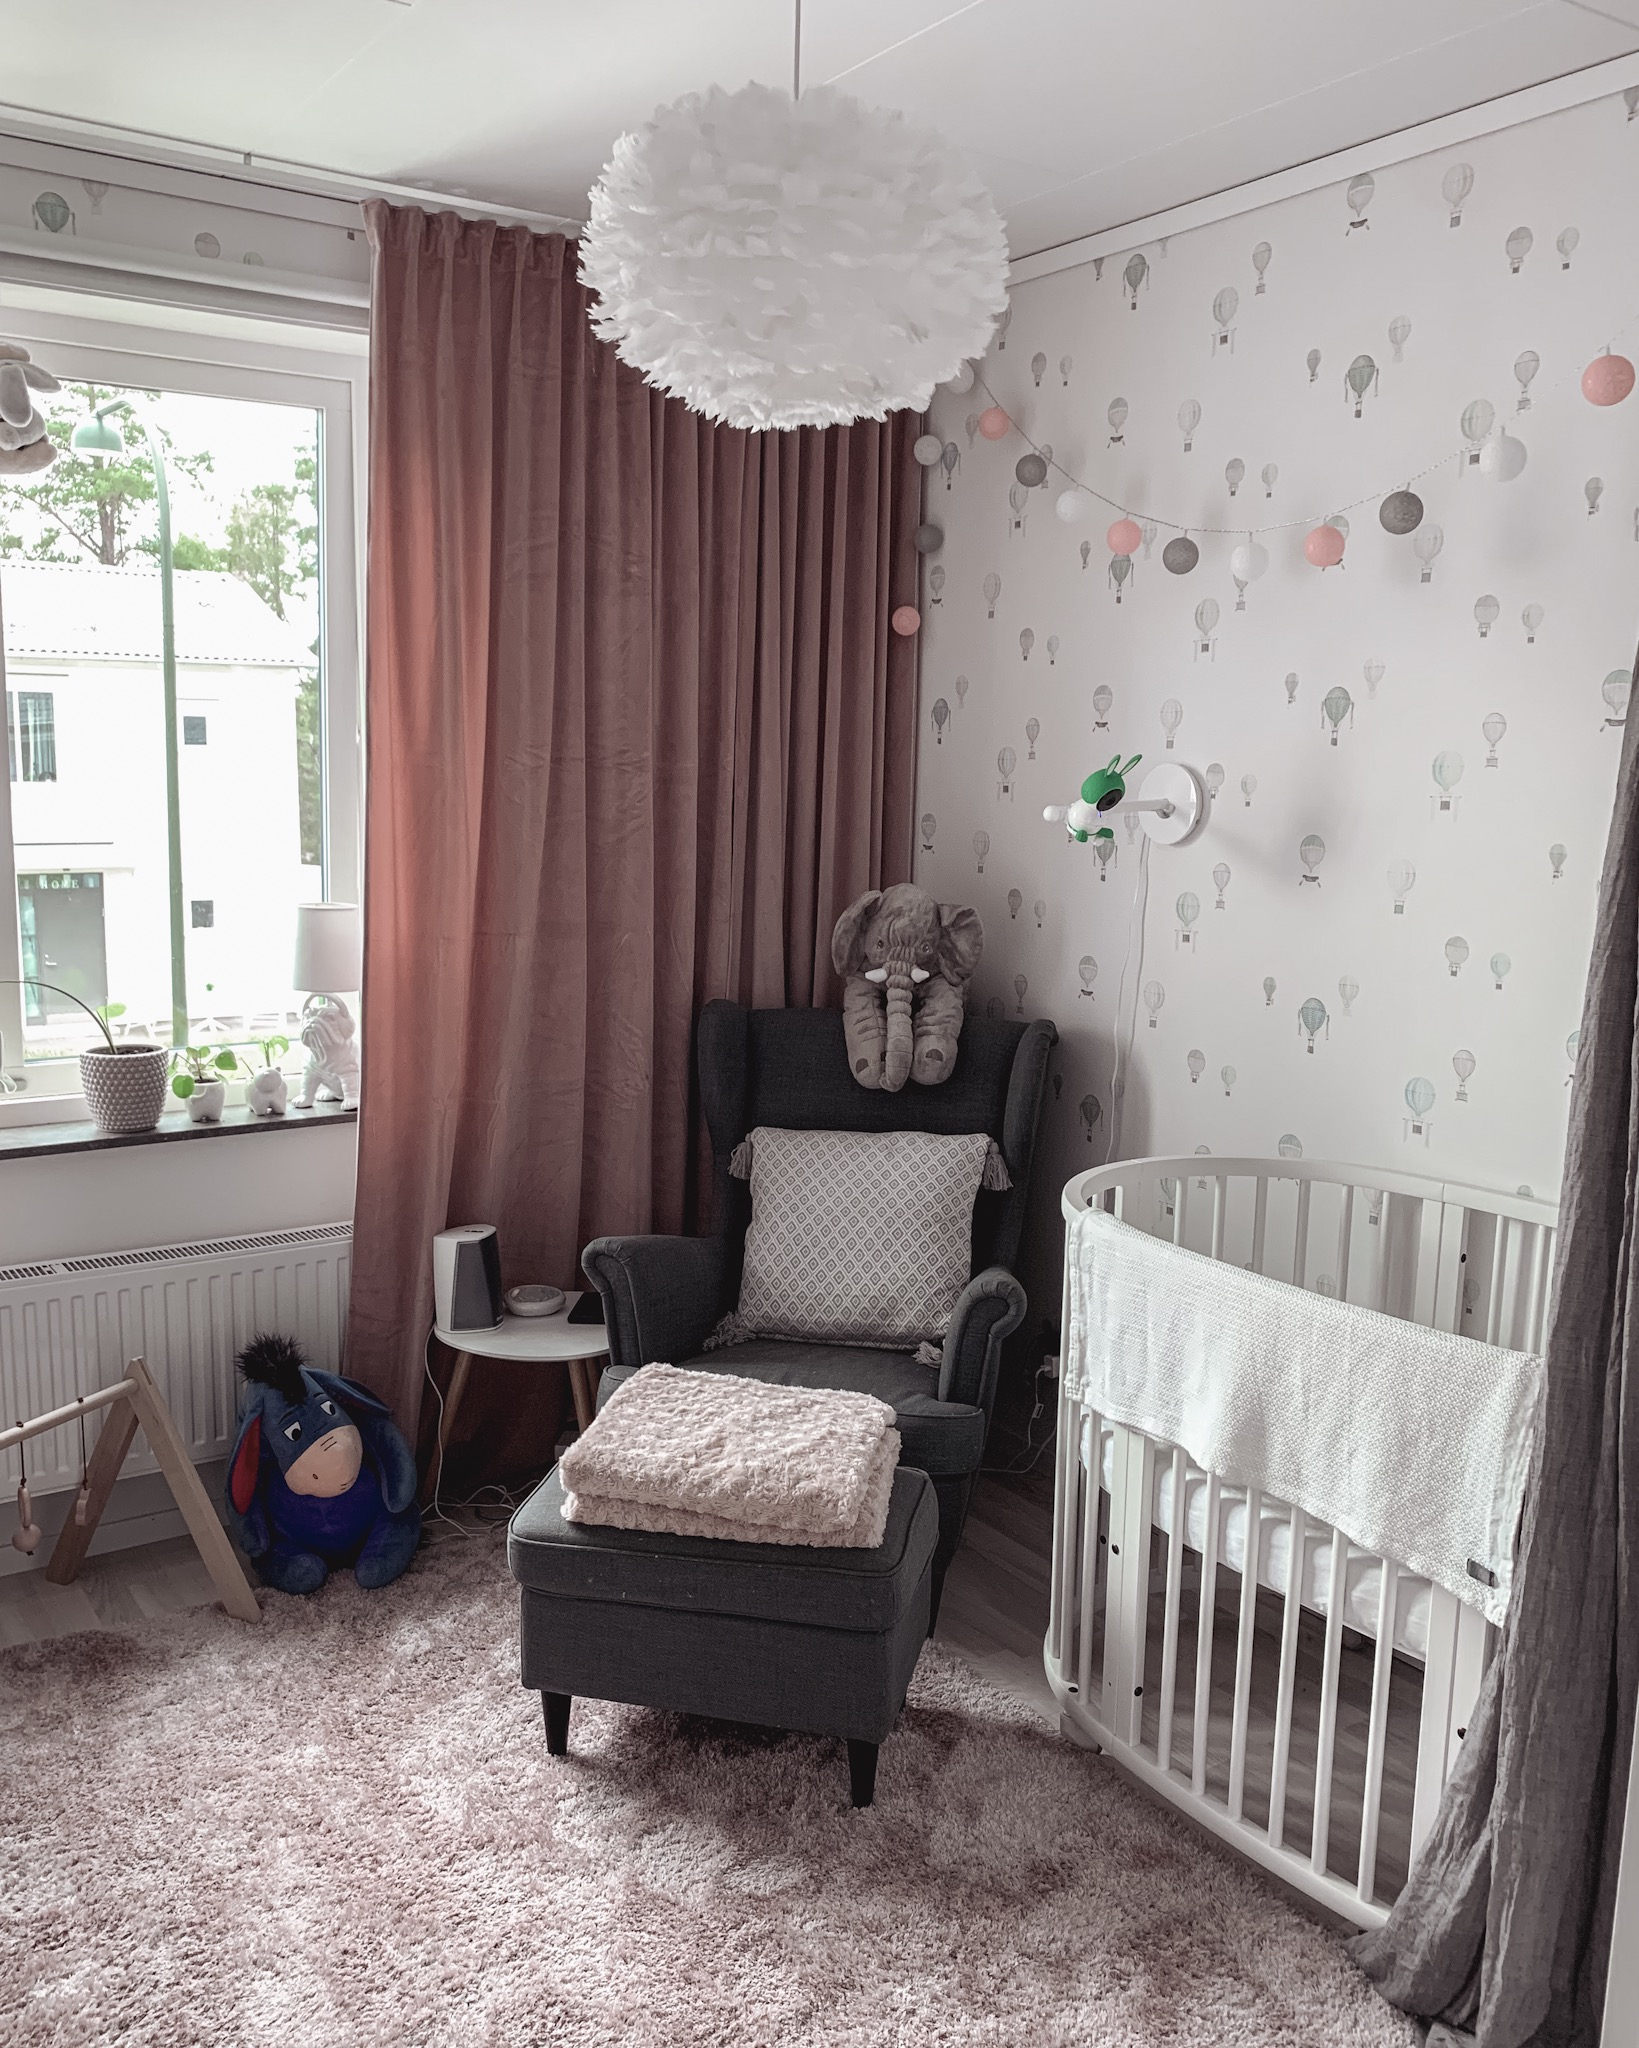 Ikea Svansmo armchair and Stokke Sleepi Crib